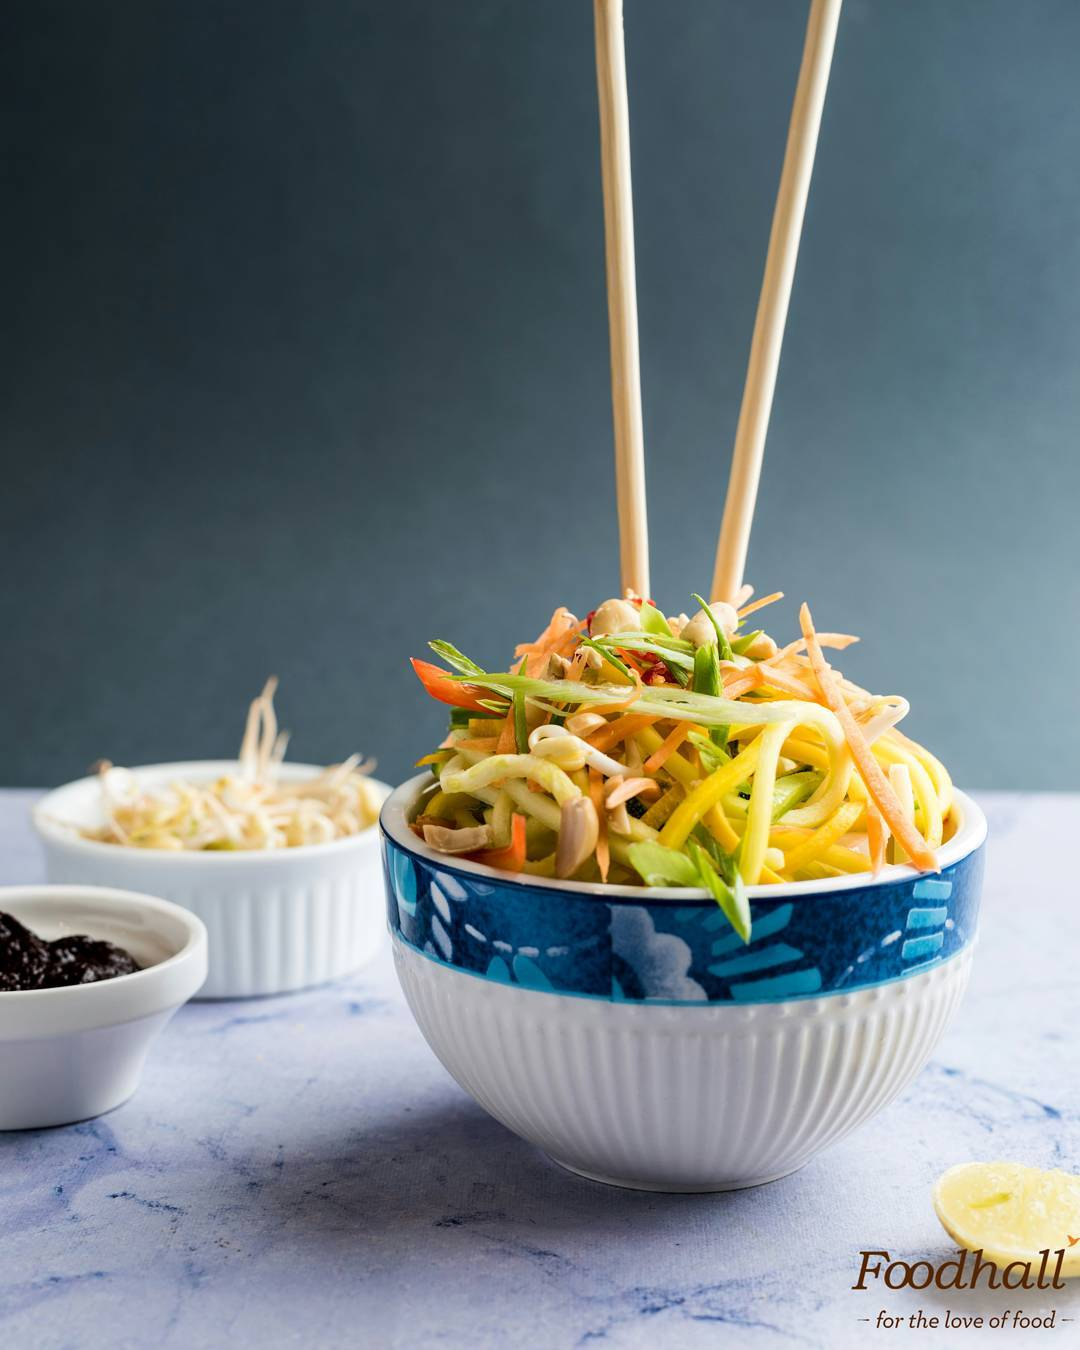 Looking for #dinner in a jiffy? Grab our DIY Pad Thai Kit! With oodles of zoodles, bell peppers, and dressing, it's a surefire way to make mid-week meals a lot easier.  #ForTheLoveOfFood #FoodhallIndia